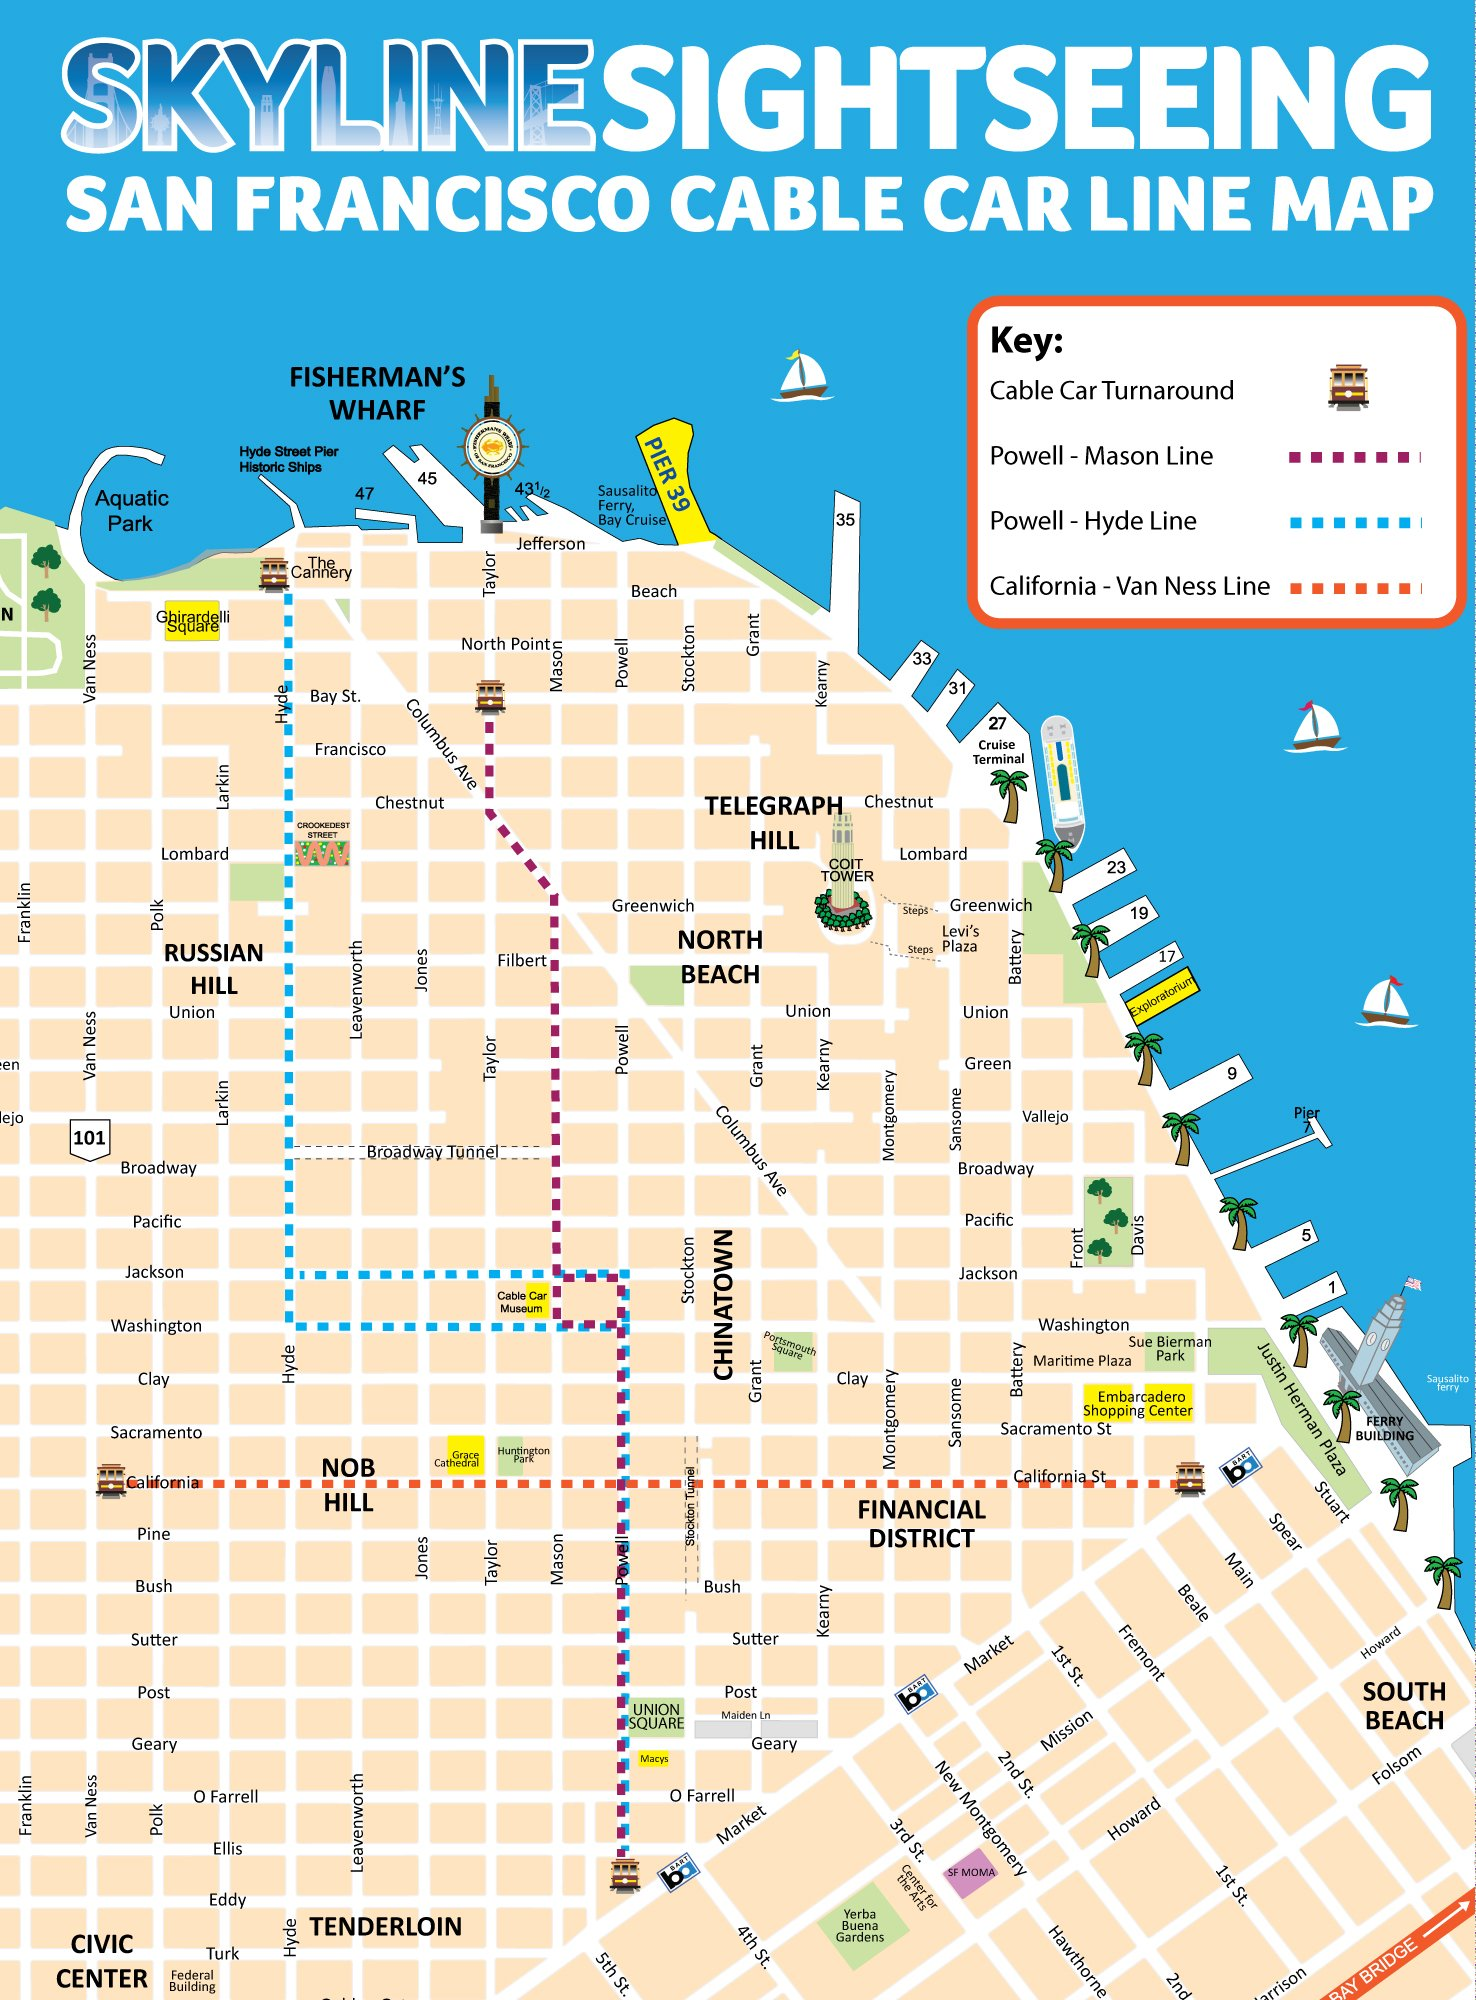 San Francisco Cable Car Line Map - Skyline Sightseeing on russian hill cable car map, fisherman's wharf, zermatt cable car map, cable car route map, alcatraz island map, cable car stop map, market street, coit tower, muni cable car map, lisbon cable car map, pier 39 map, san francisco muni, alcatraz island, ghirardelli square, emirates london cable car map, 49-mile scenic drive, twin peaks, trans-siberian railroad map, lombard street map, san francisco city hall, san francisco bay, presidio of san francisco, los angeles map, california cable car map, palace of fine arts, sf map, powell street cable car map, golden gate, lombard street, golden gate bridge, union square, chicago cable cars map, new orleans cable car map, golden gate park, transamerica pyramid,